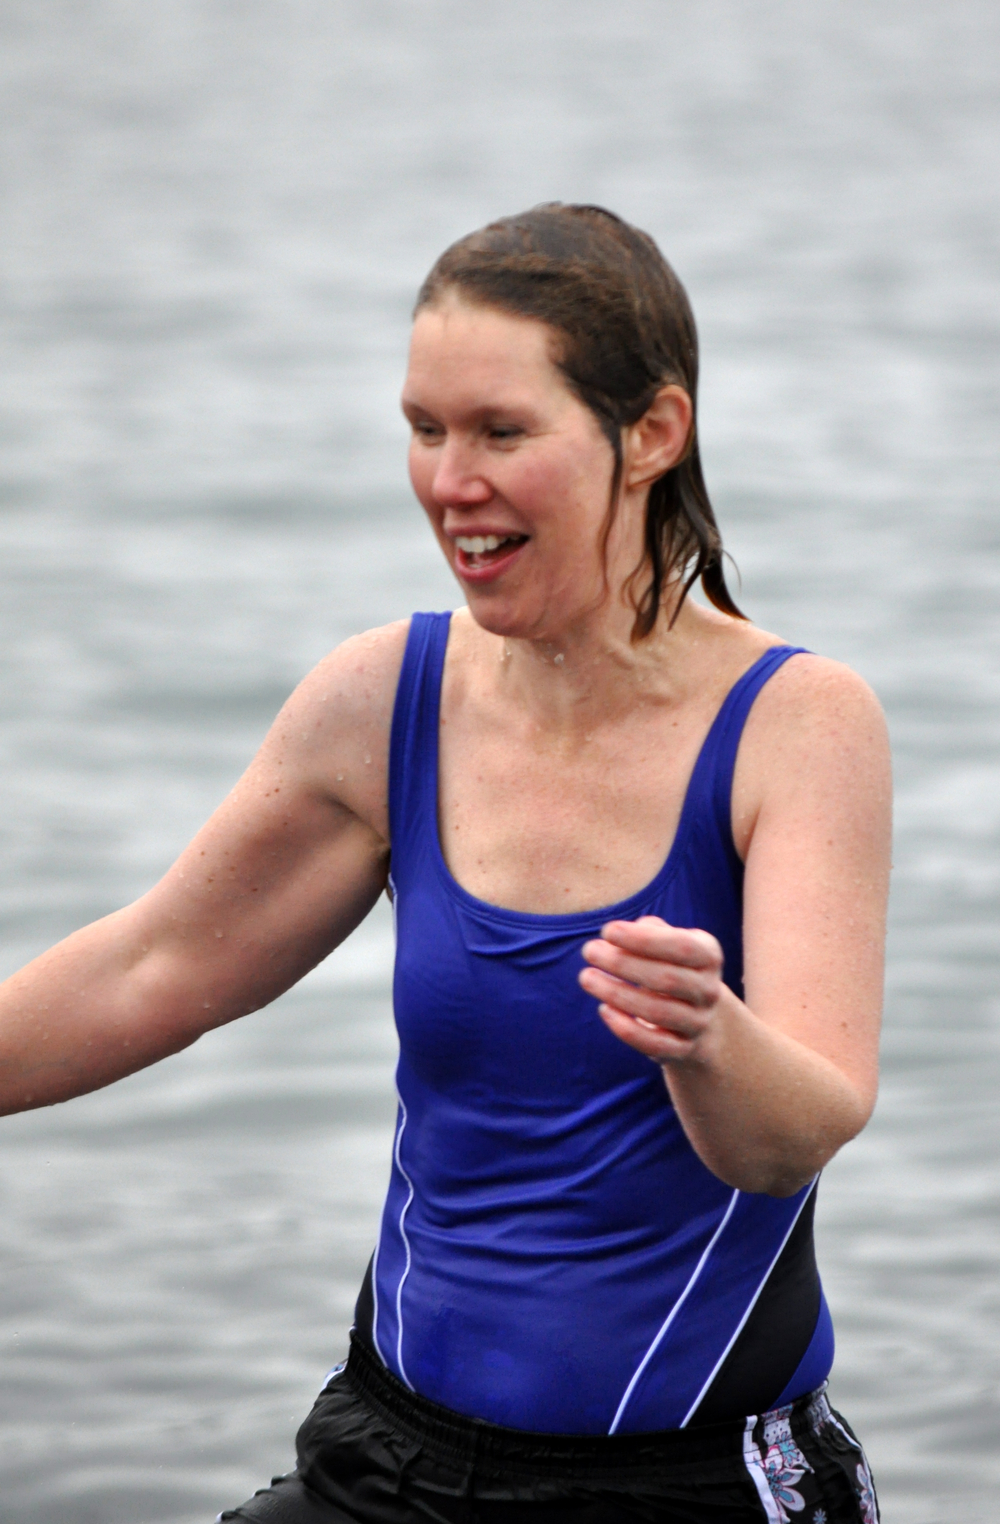 Maggie at the 2014 Sooke Polar Bear Swim